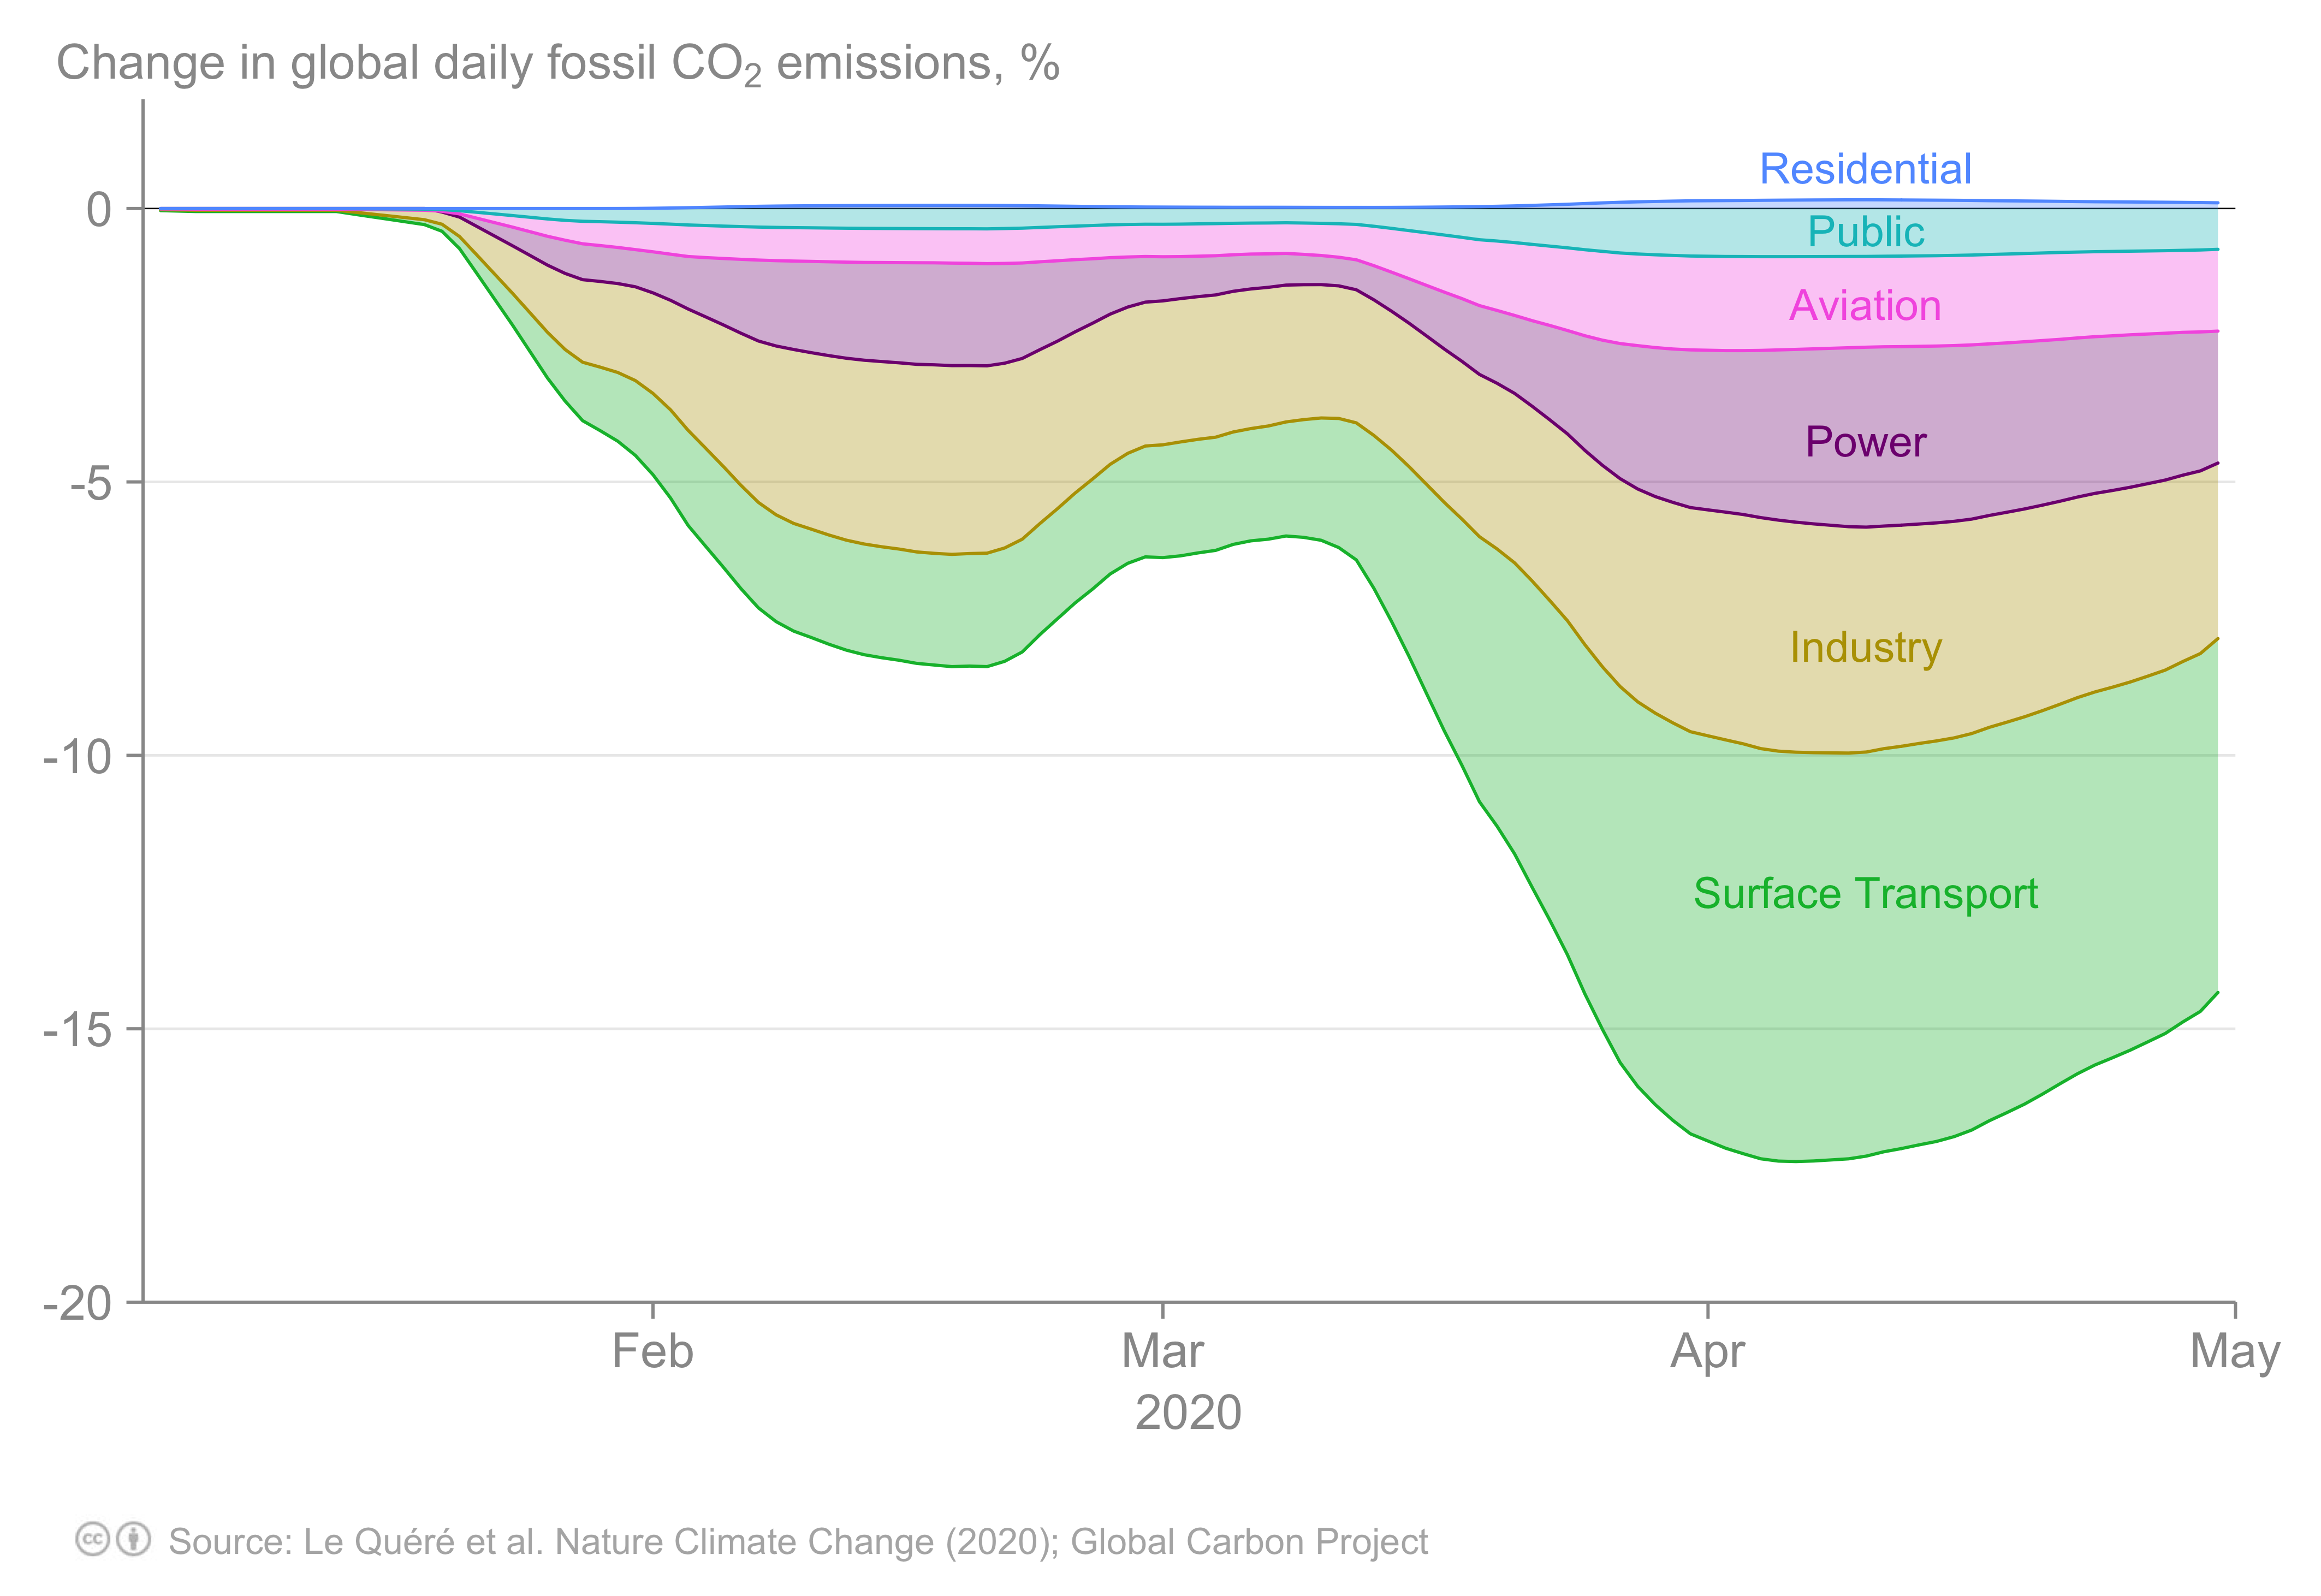 Graph of C02 emissions from different sectors between January and May 2020.